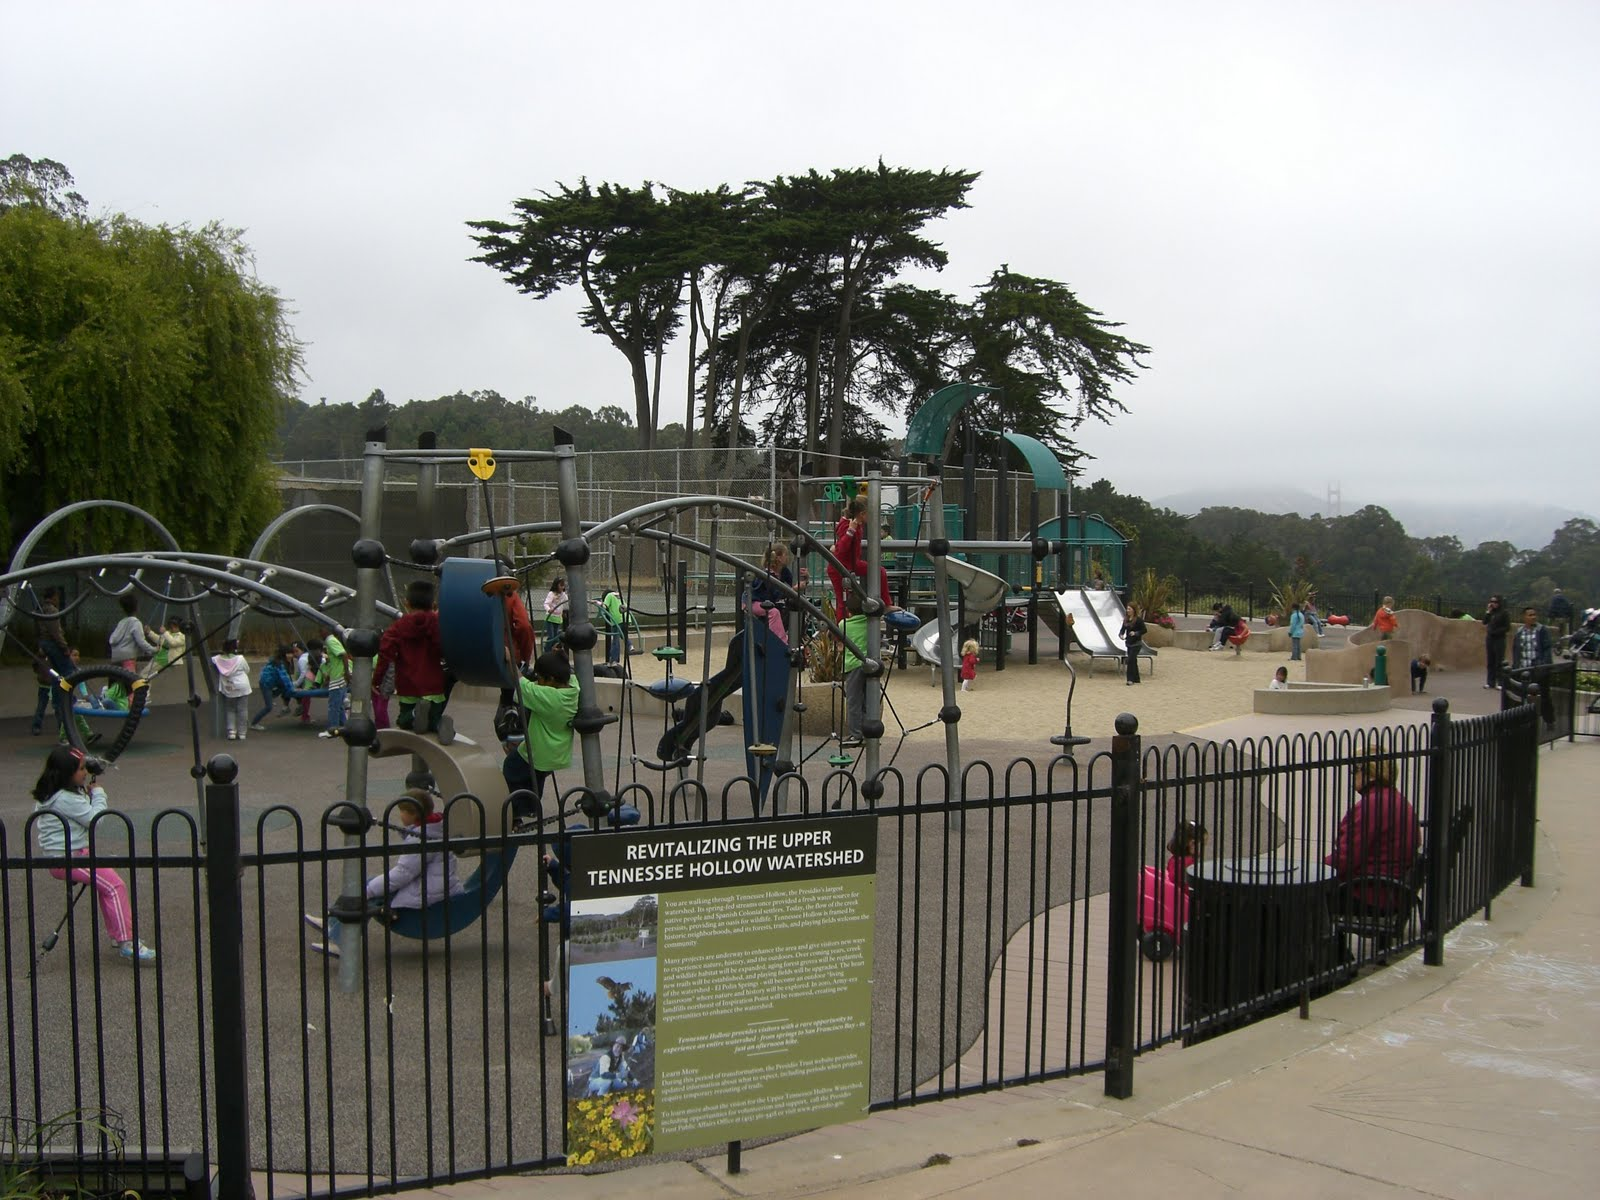 Established in 1923 to serve military families living in the Presidio, Julius Kahn Playground now boasts modern playground equipment, sports courts and playing fields, a clubhouse and hiking paths that connect with deeper trails within the Presidio.